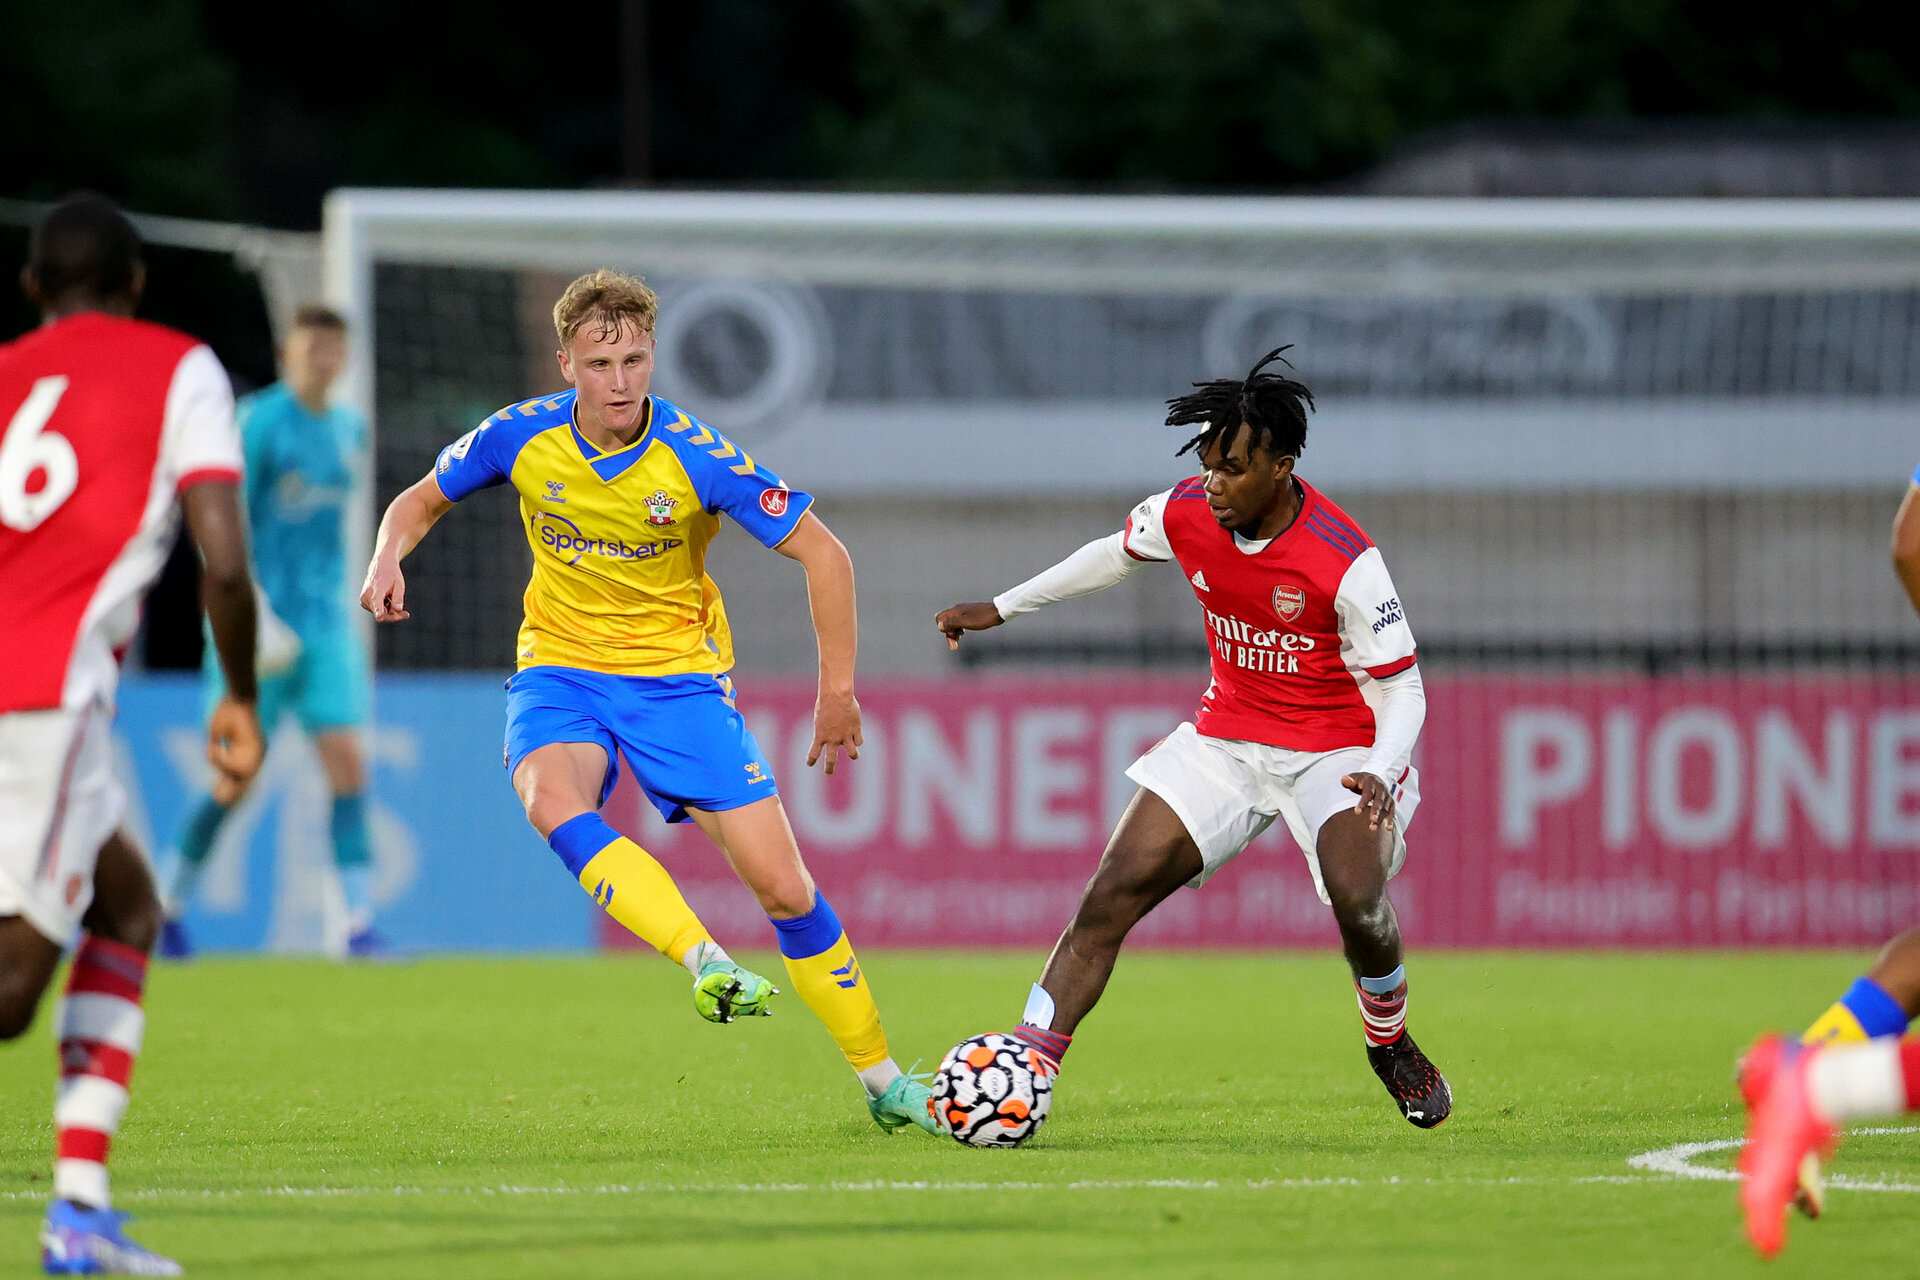 BOREHAMWOOD, ENGLAND - SEPTEMBER 02:  during the Premier League Cup match between Arsenal and Southampton B Team at Meadow Park on September 02, 2021 in Borehamwood, England. (Photo by Isabelle Field/Southampton FC )